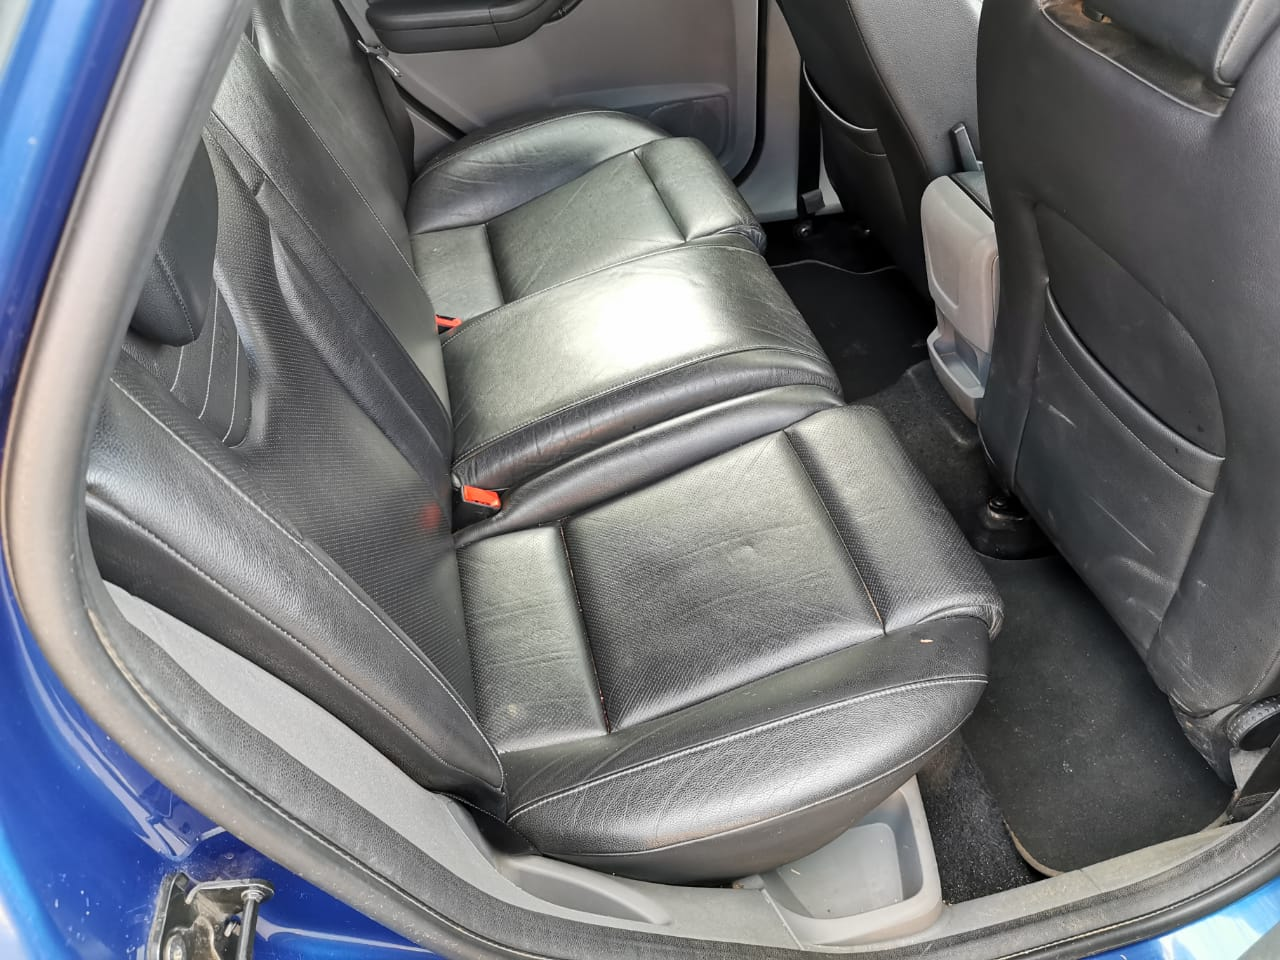 2008 Ford Focus ST 3 door (leather + sunroof + techno pack)